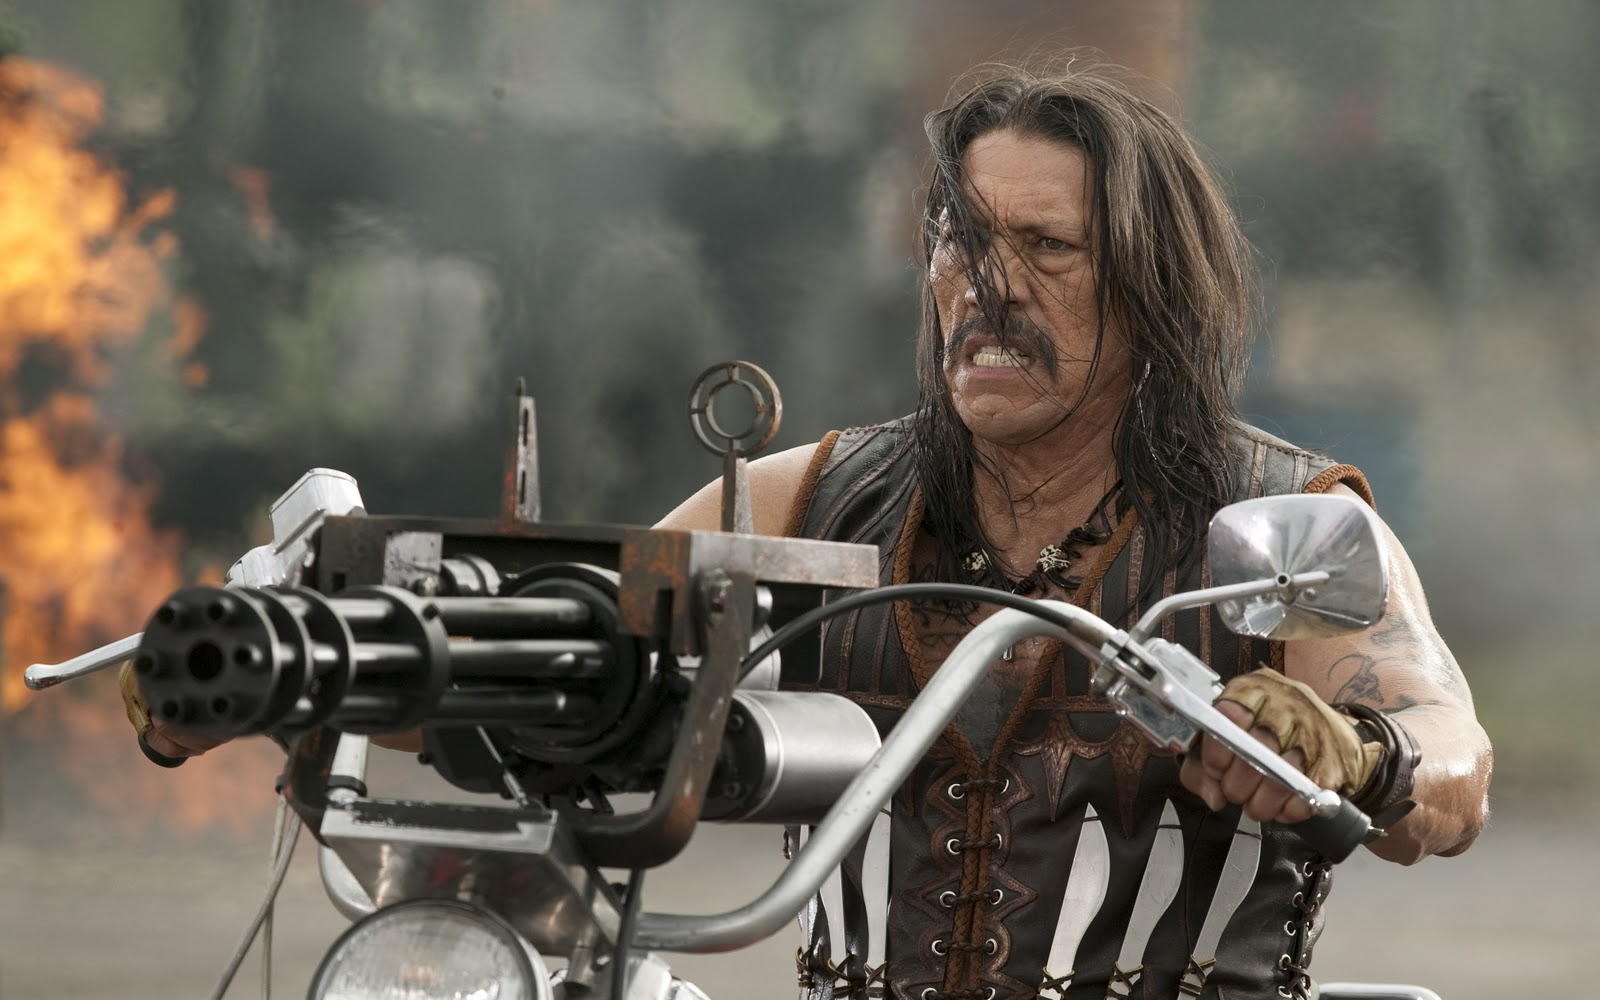 #TBT: 6 Years Ago, Plastilina Mosh Released a Song About Danny Trejo, Our Favorite Movie Villain